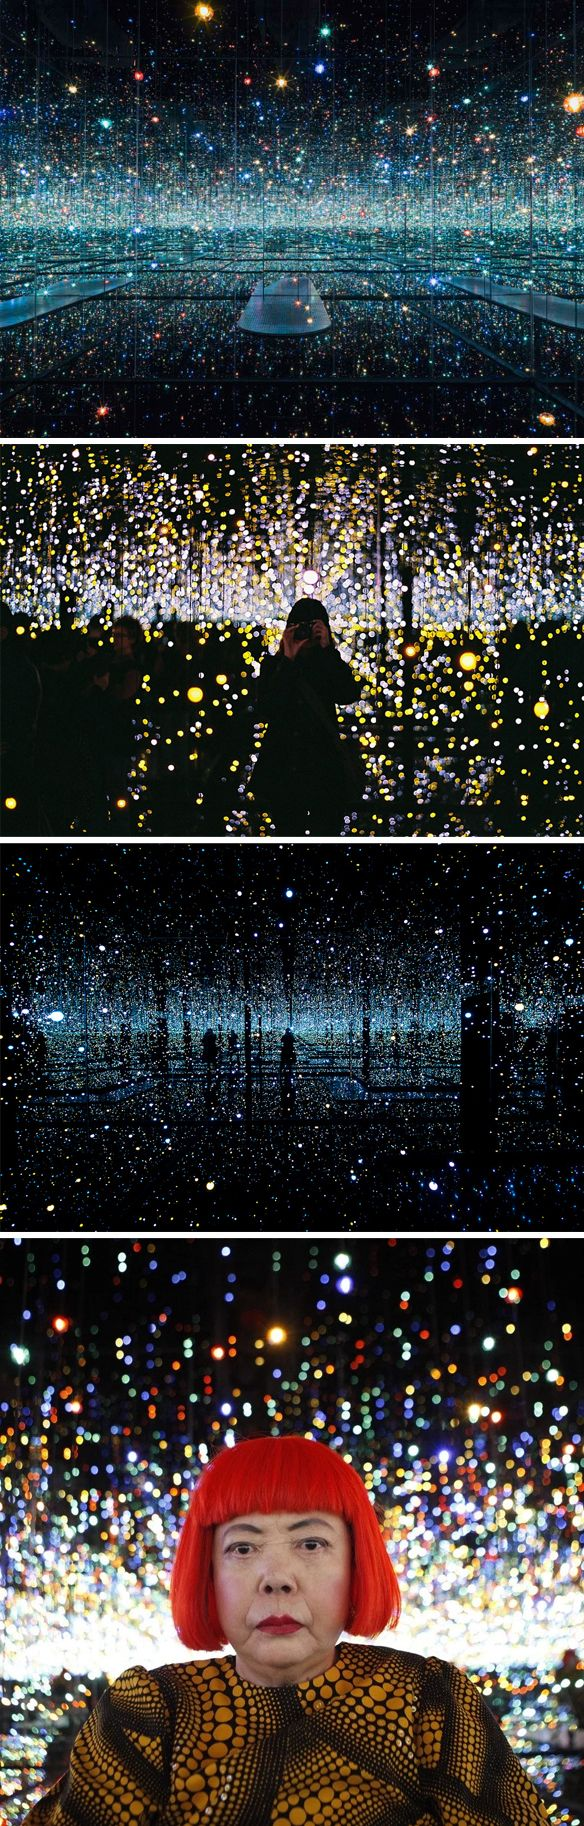 yayoi kusama at the broad museum, la                                                                                                                                                                                 More